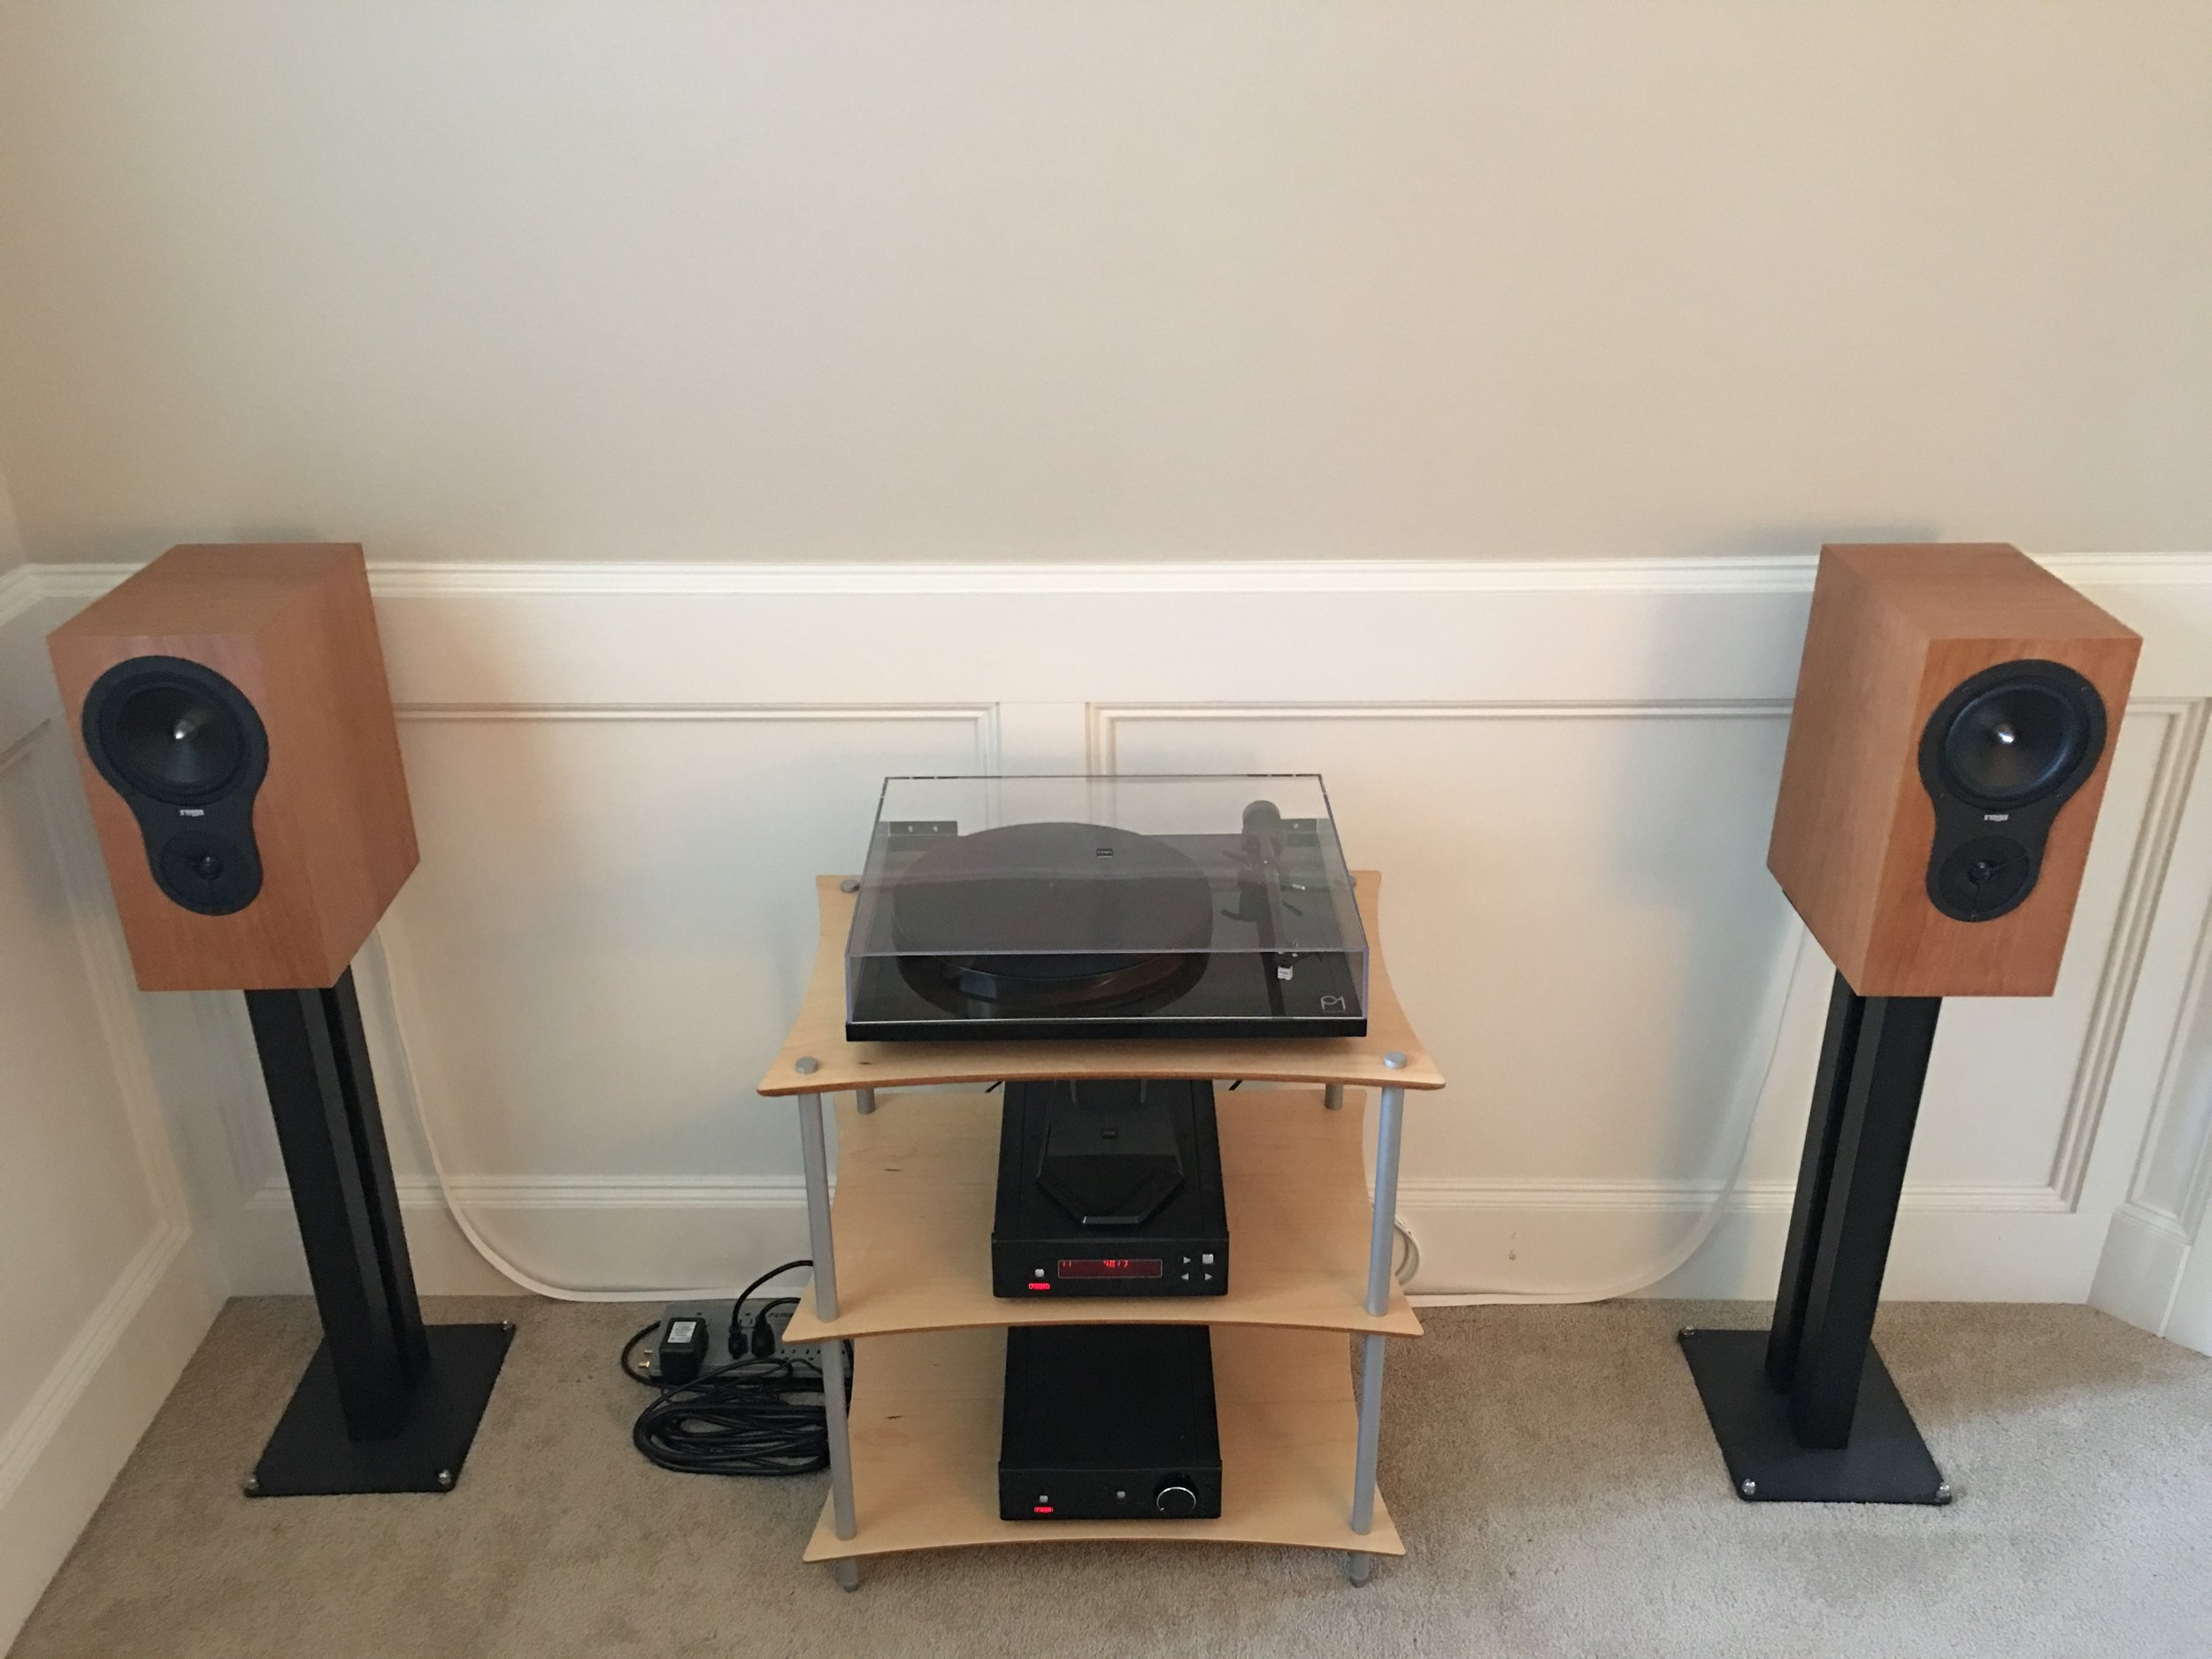 Jason W's sweet Rega system! Rega Brio, Apollo CD player, P1, RX-1 speakers. Simple, perfect. Quadraspire rack.